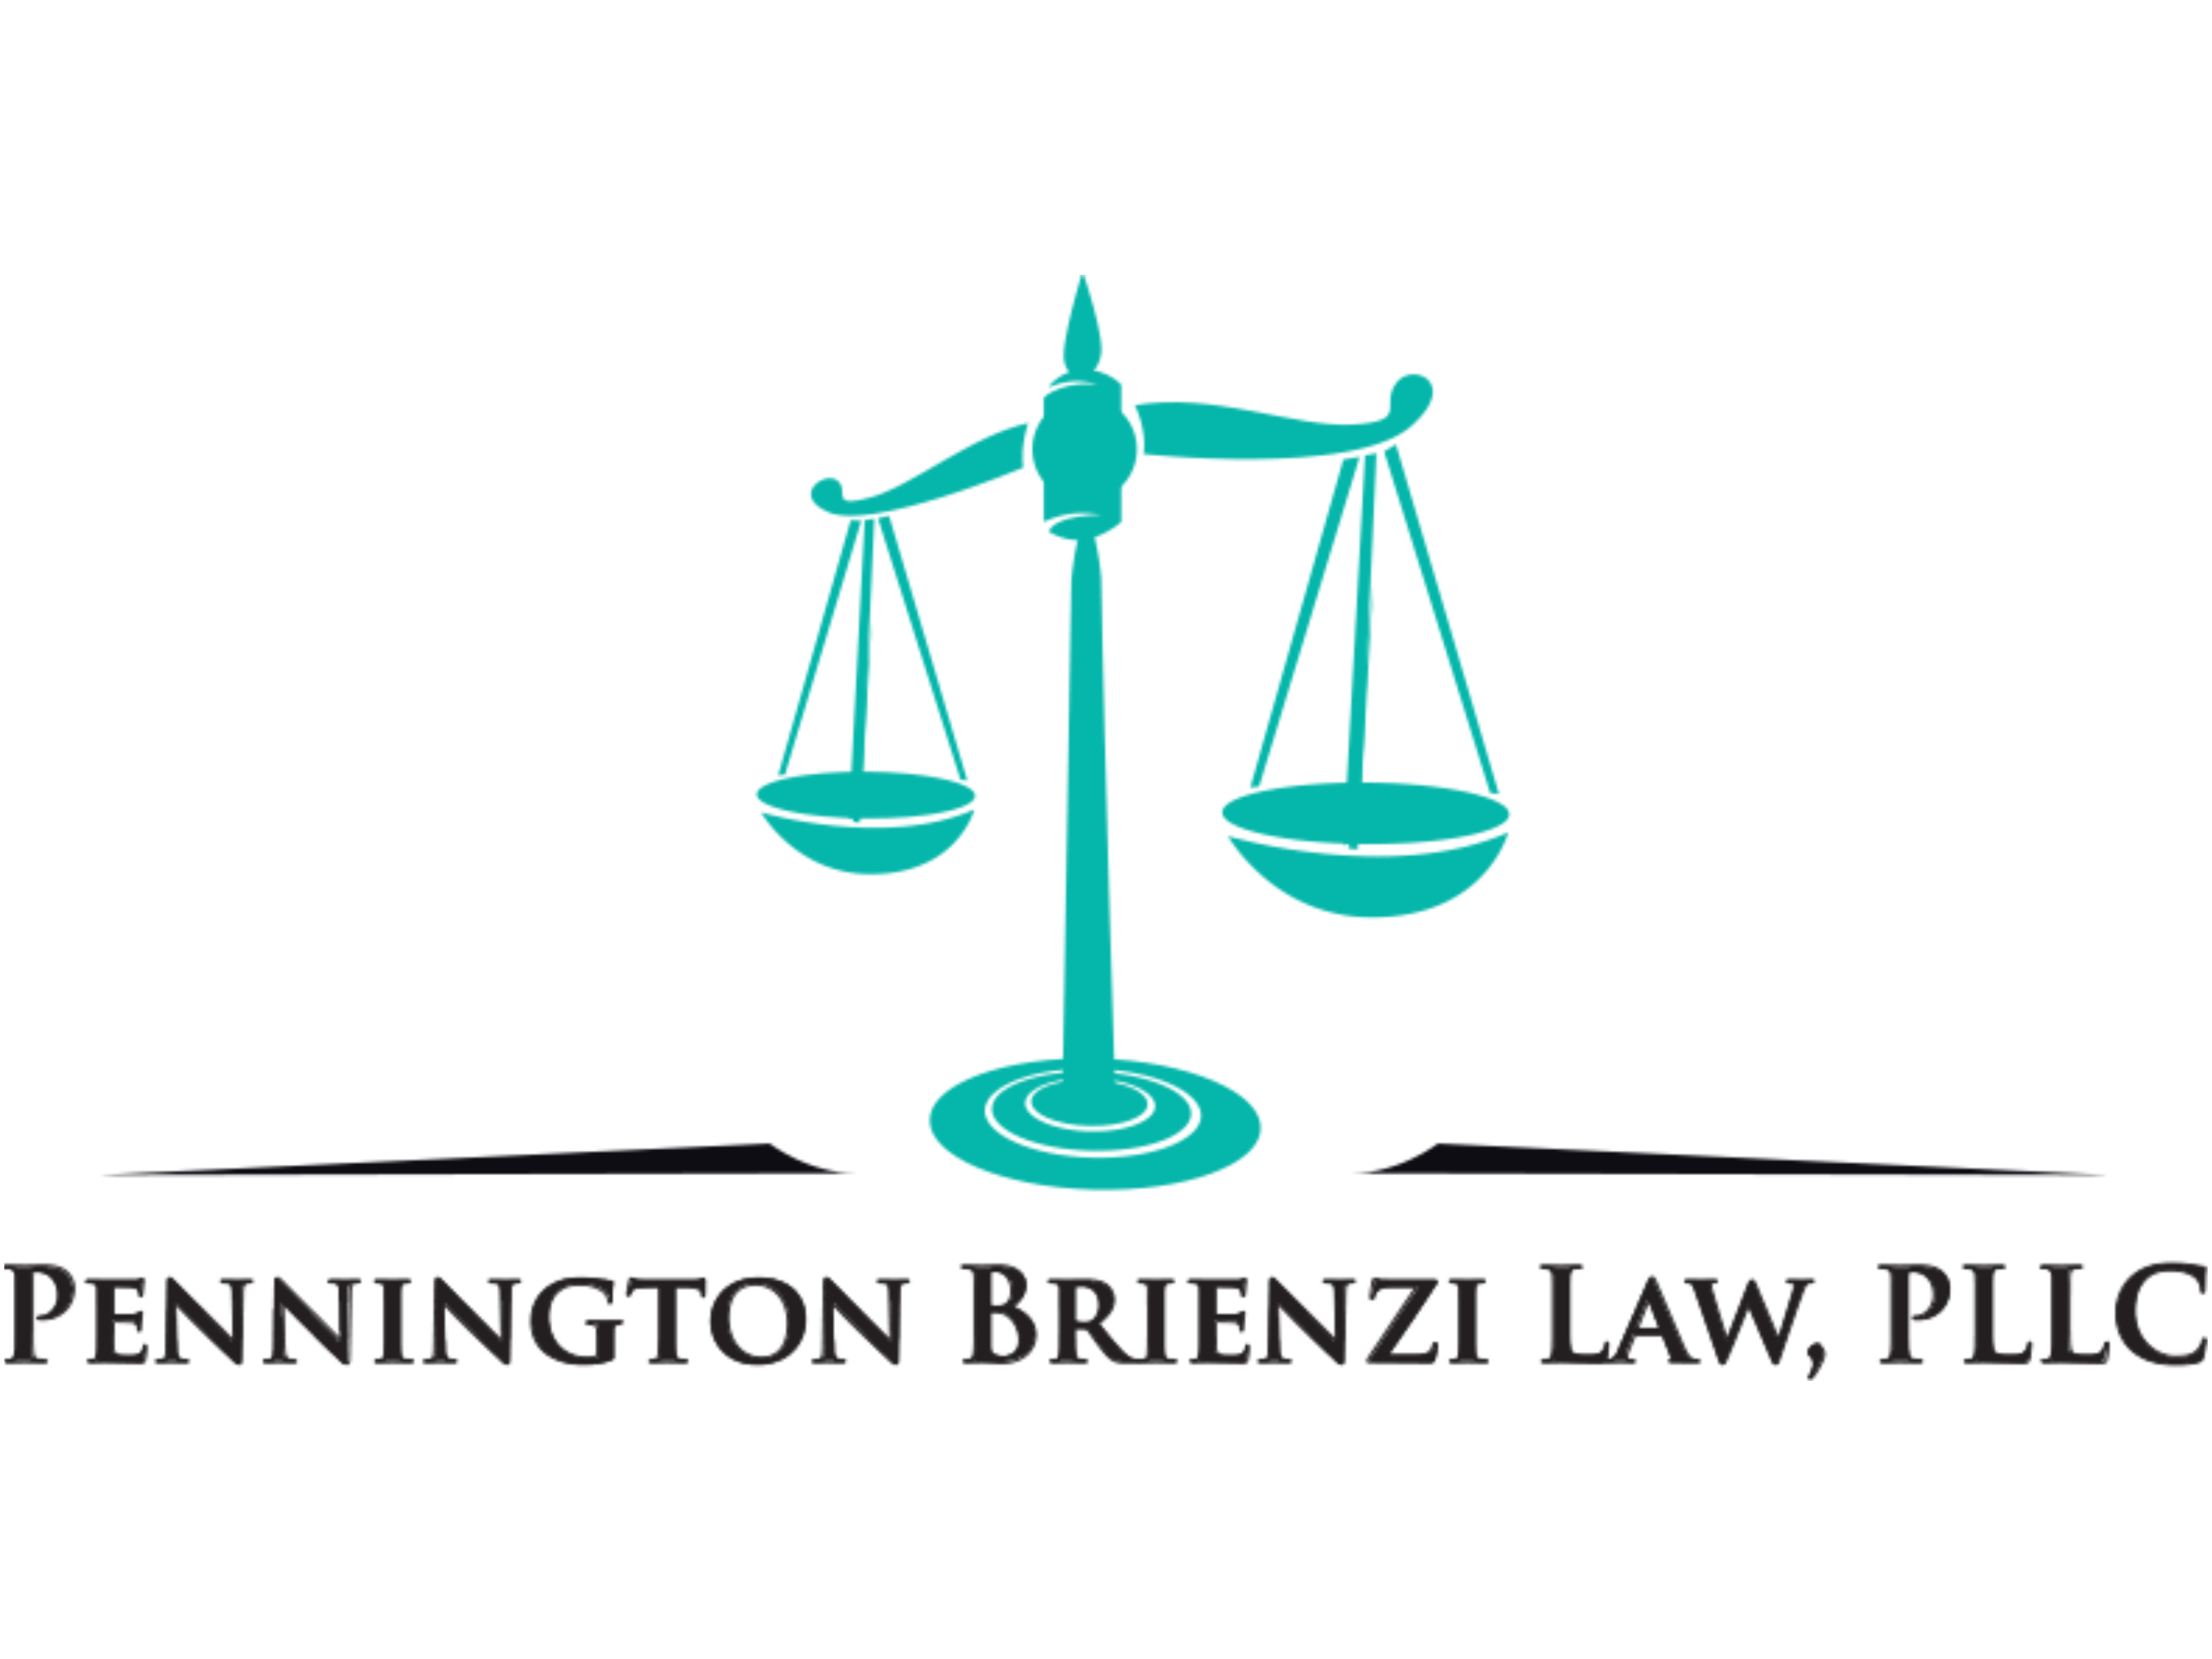 Pennington Brienzi Law